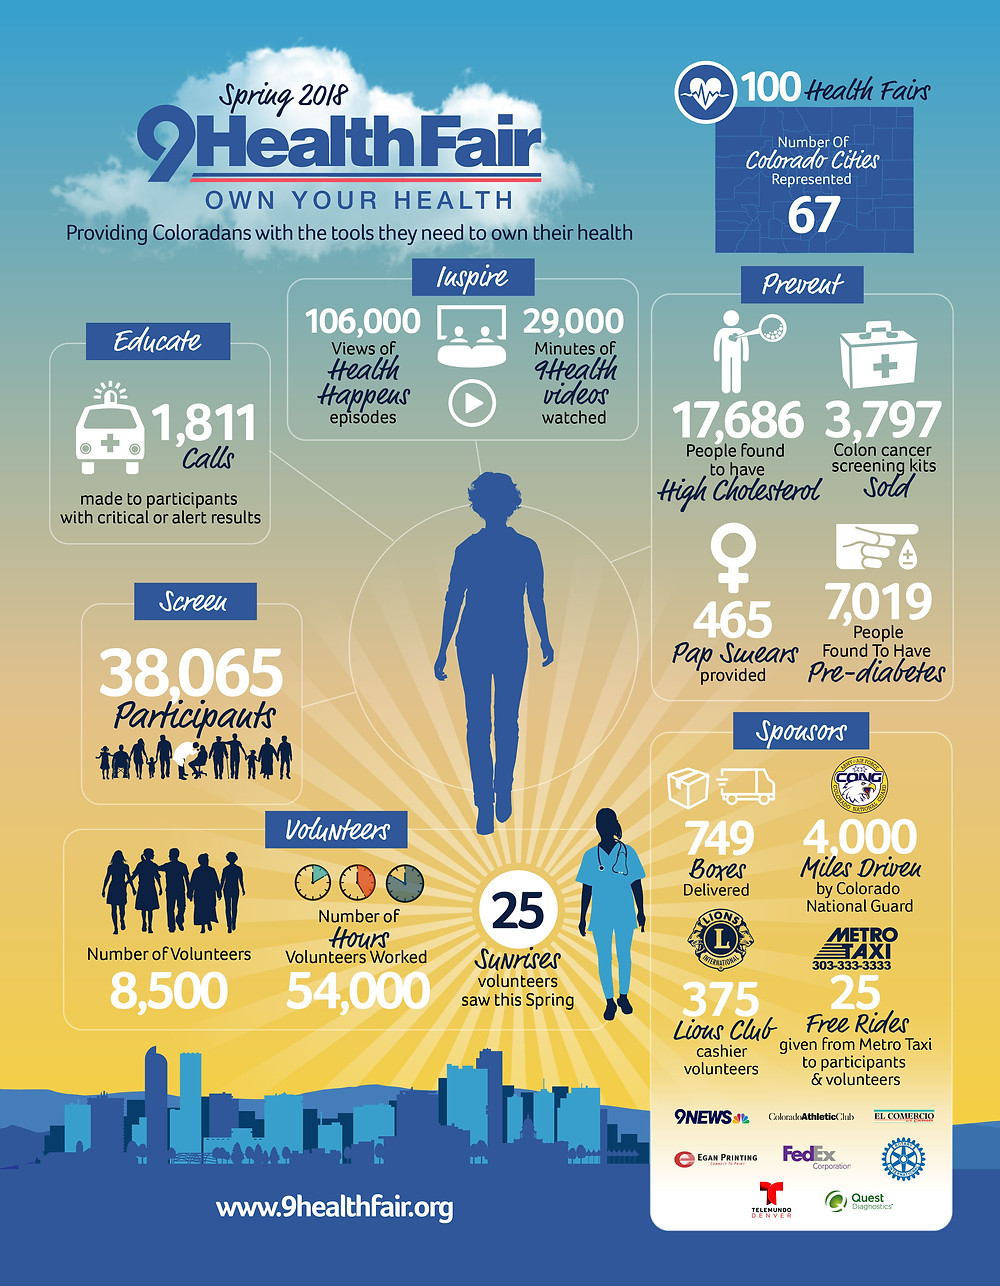 Infographic Designer for 9 Health Fair in Denver